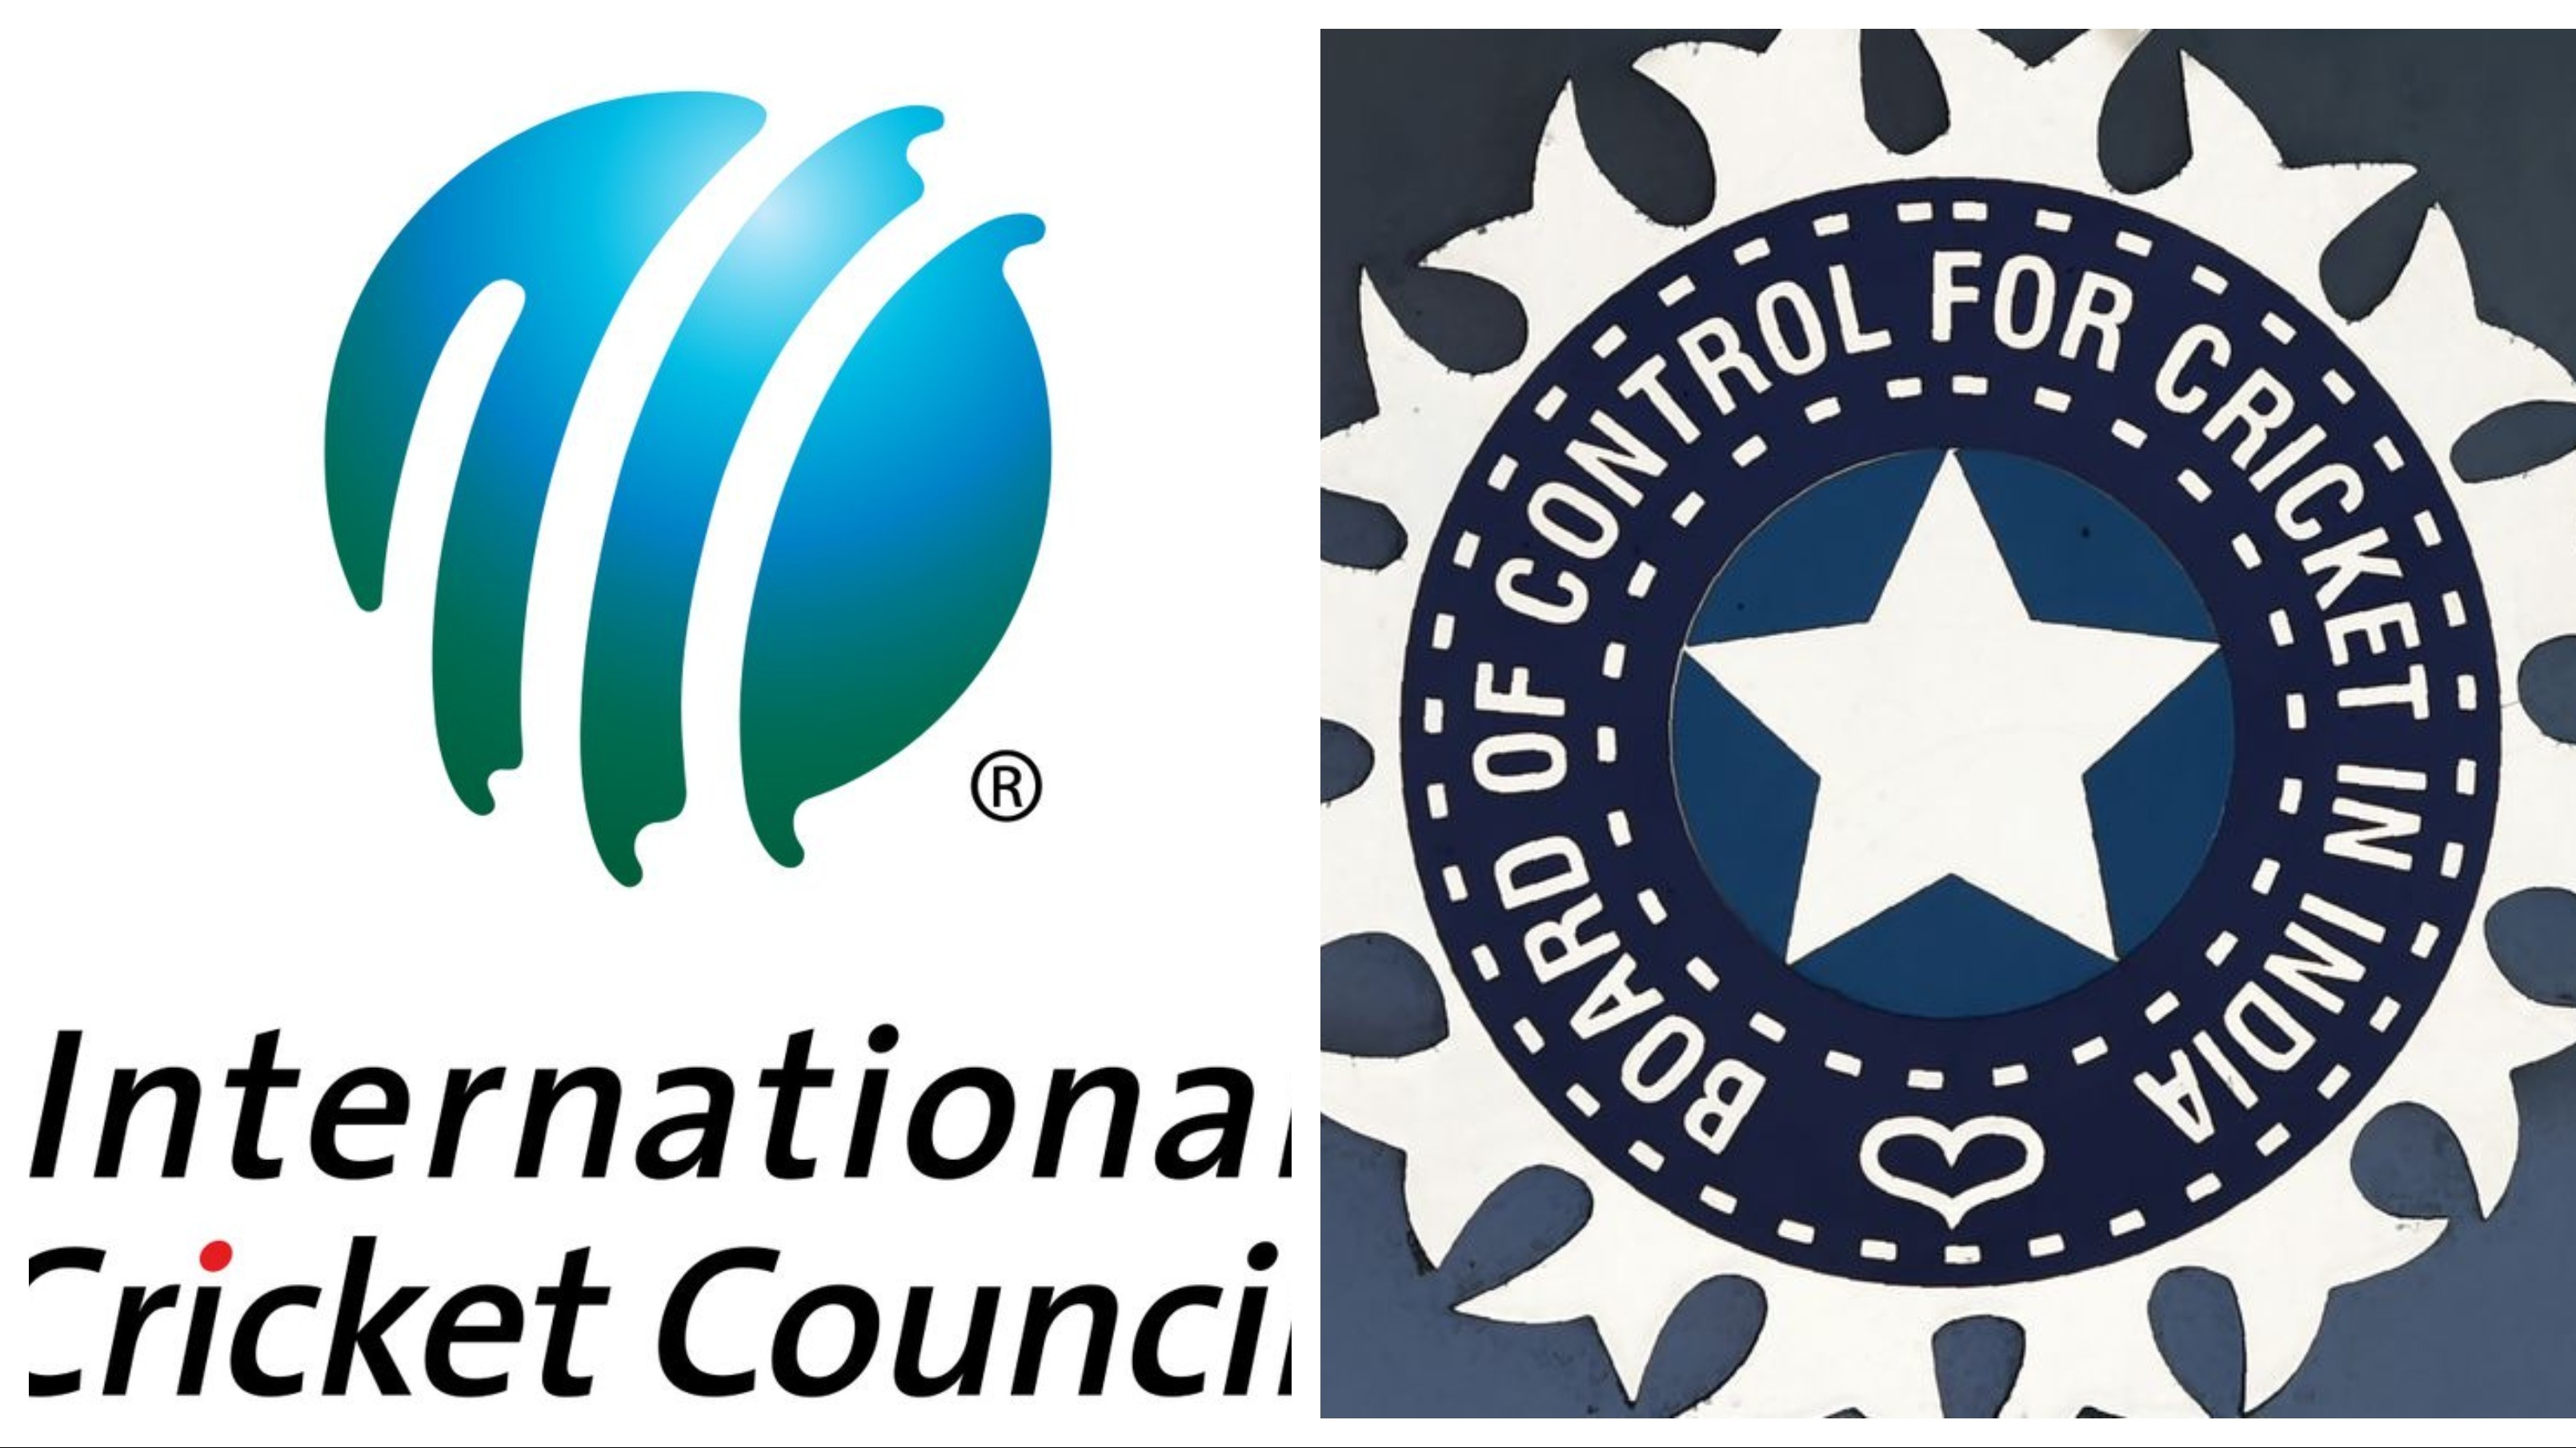 Lockdown in Melbourne should push ICC into taking final call over T20 World Cup: BCCI official